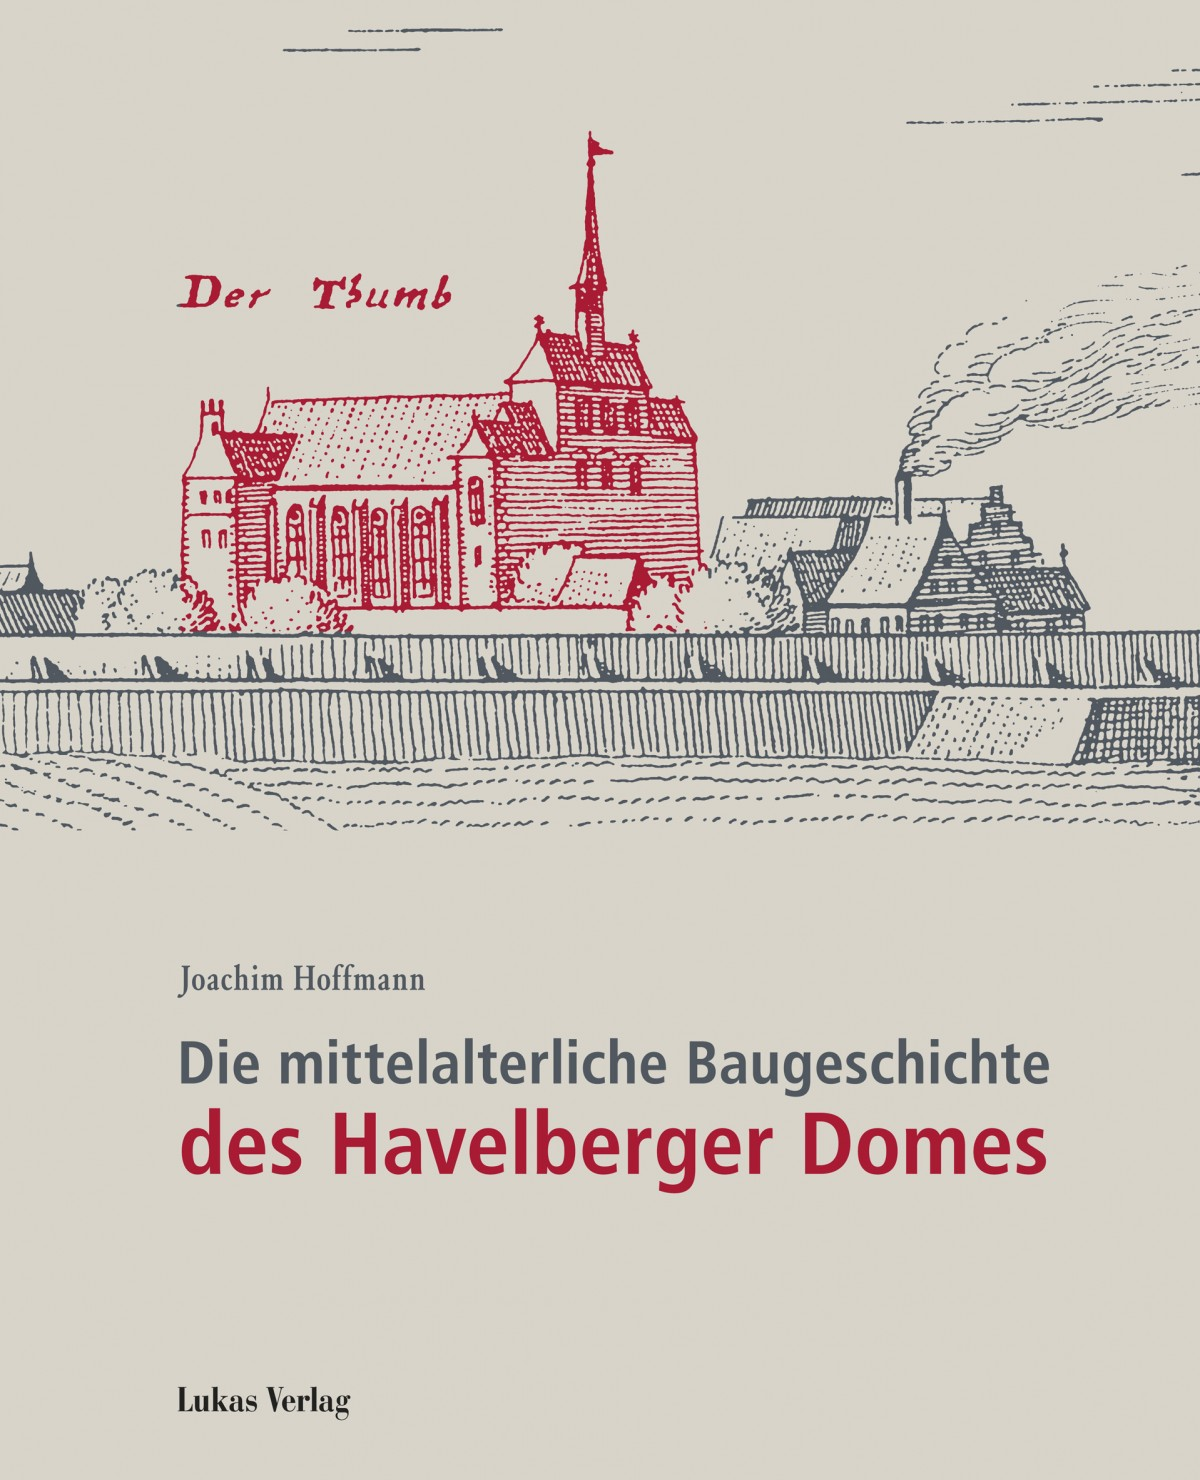 Die mittelalterliche  Baugeschichte des  Havelberger Domes